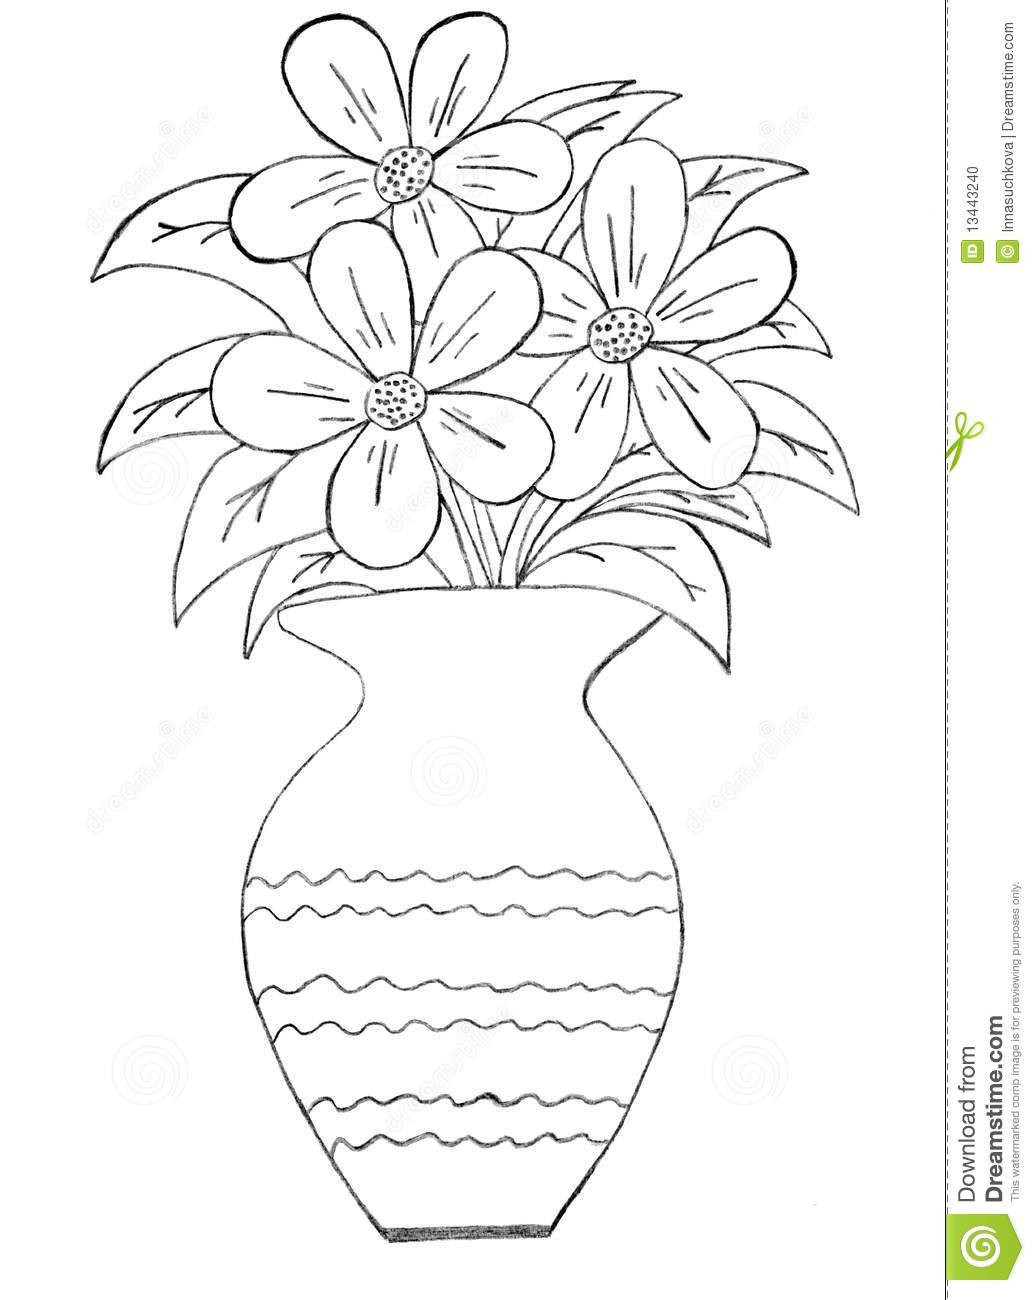 Flower Vase Images Black And White Flowers Healthy